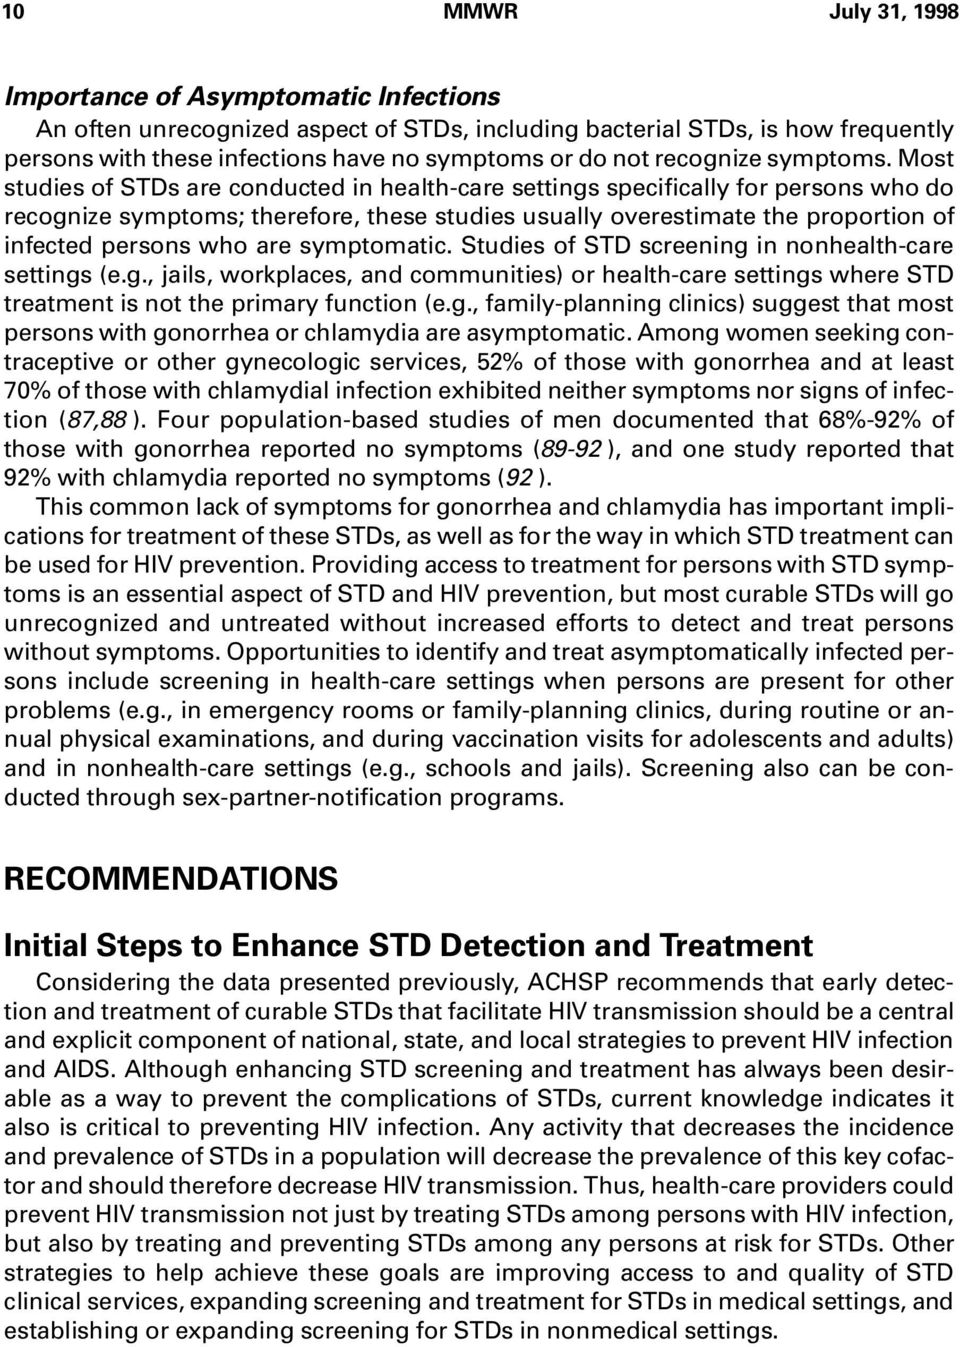 Most studies of STDs are conducted in health-care settings specifically for persons who do recognize symptoms; therefore, these studies usually overestimate the proportion of infected persons who are